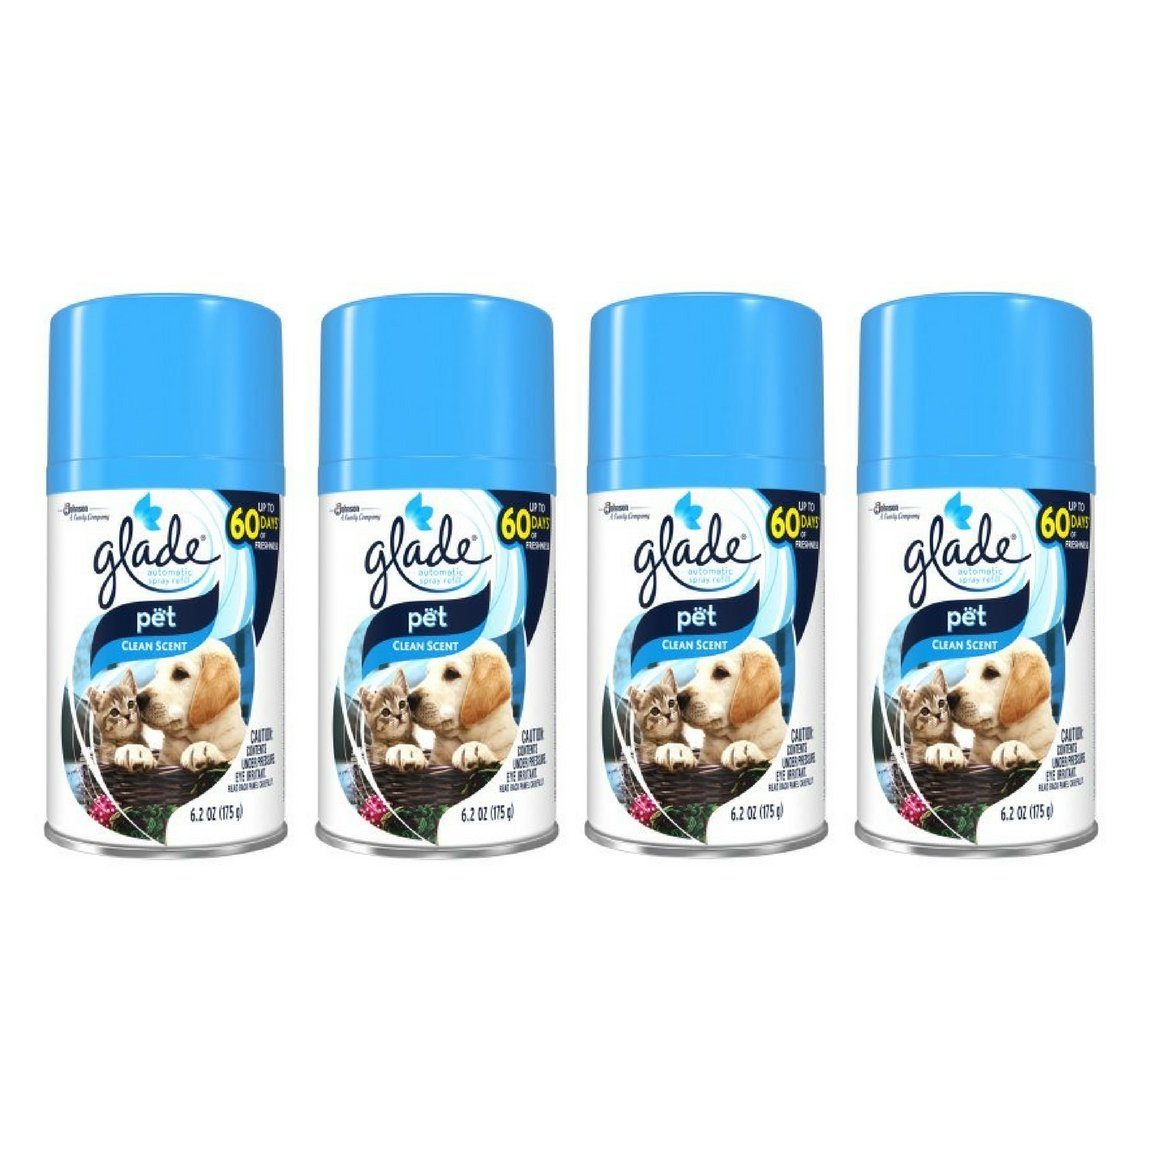 Automatic Spray Air Freshener Refill, Pet Clean Scent, 6.2 Ounce - 4 Packs